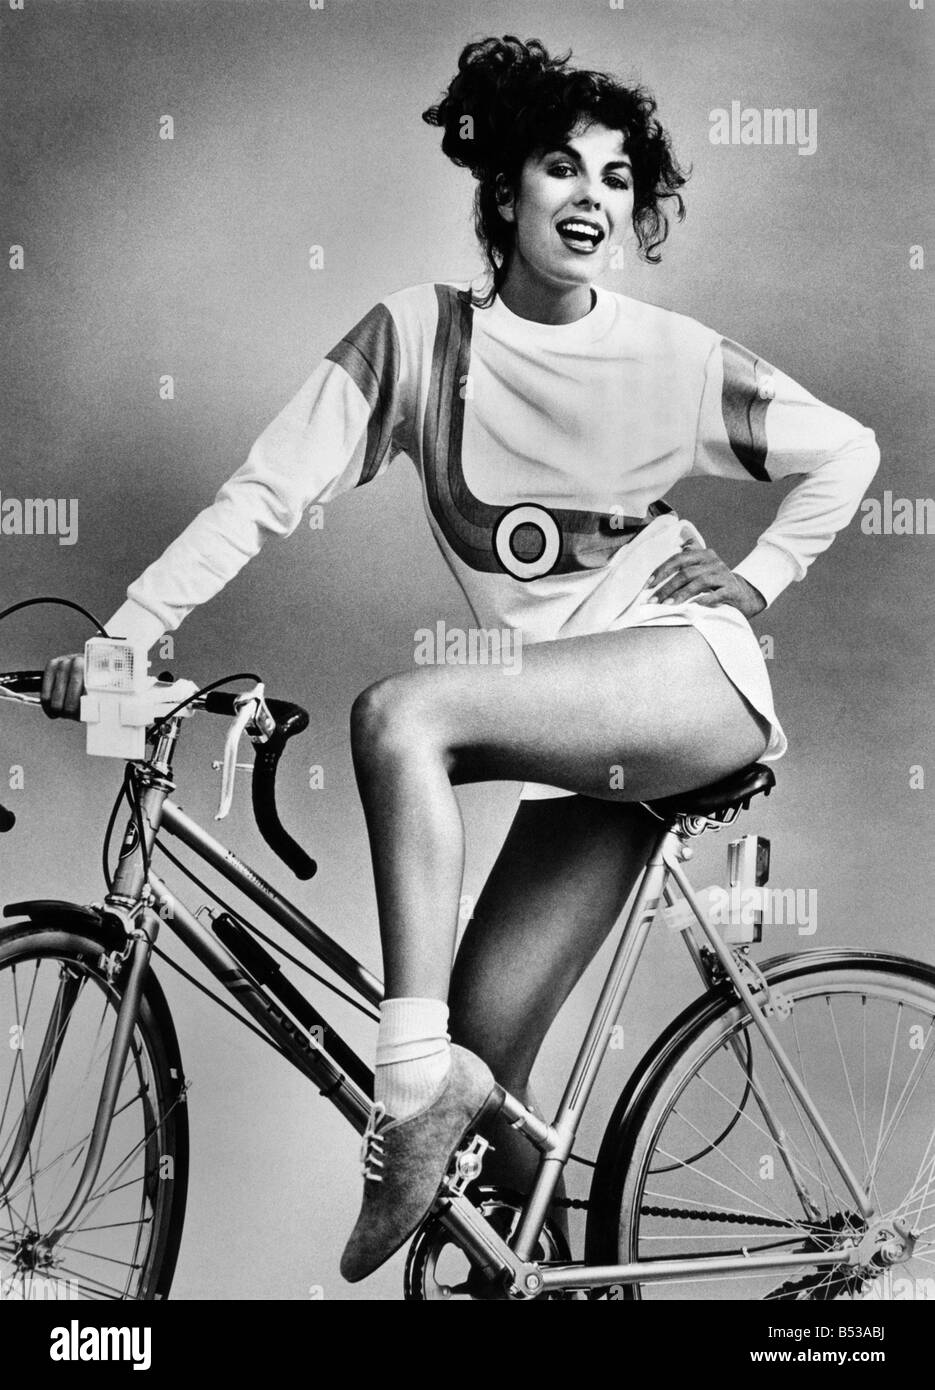 Fashion - Shorts and Hotpants. Short shorts and long sleeved top. Model sits on bicycle. June - Stock Image